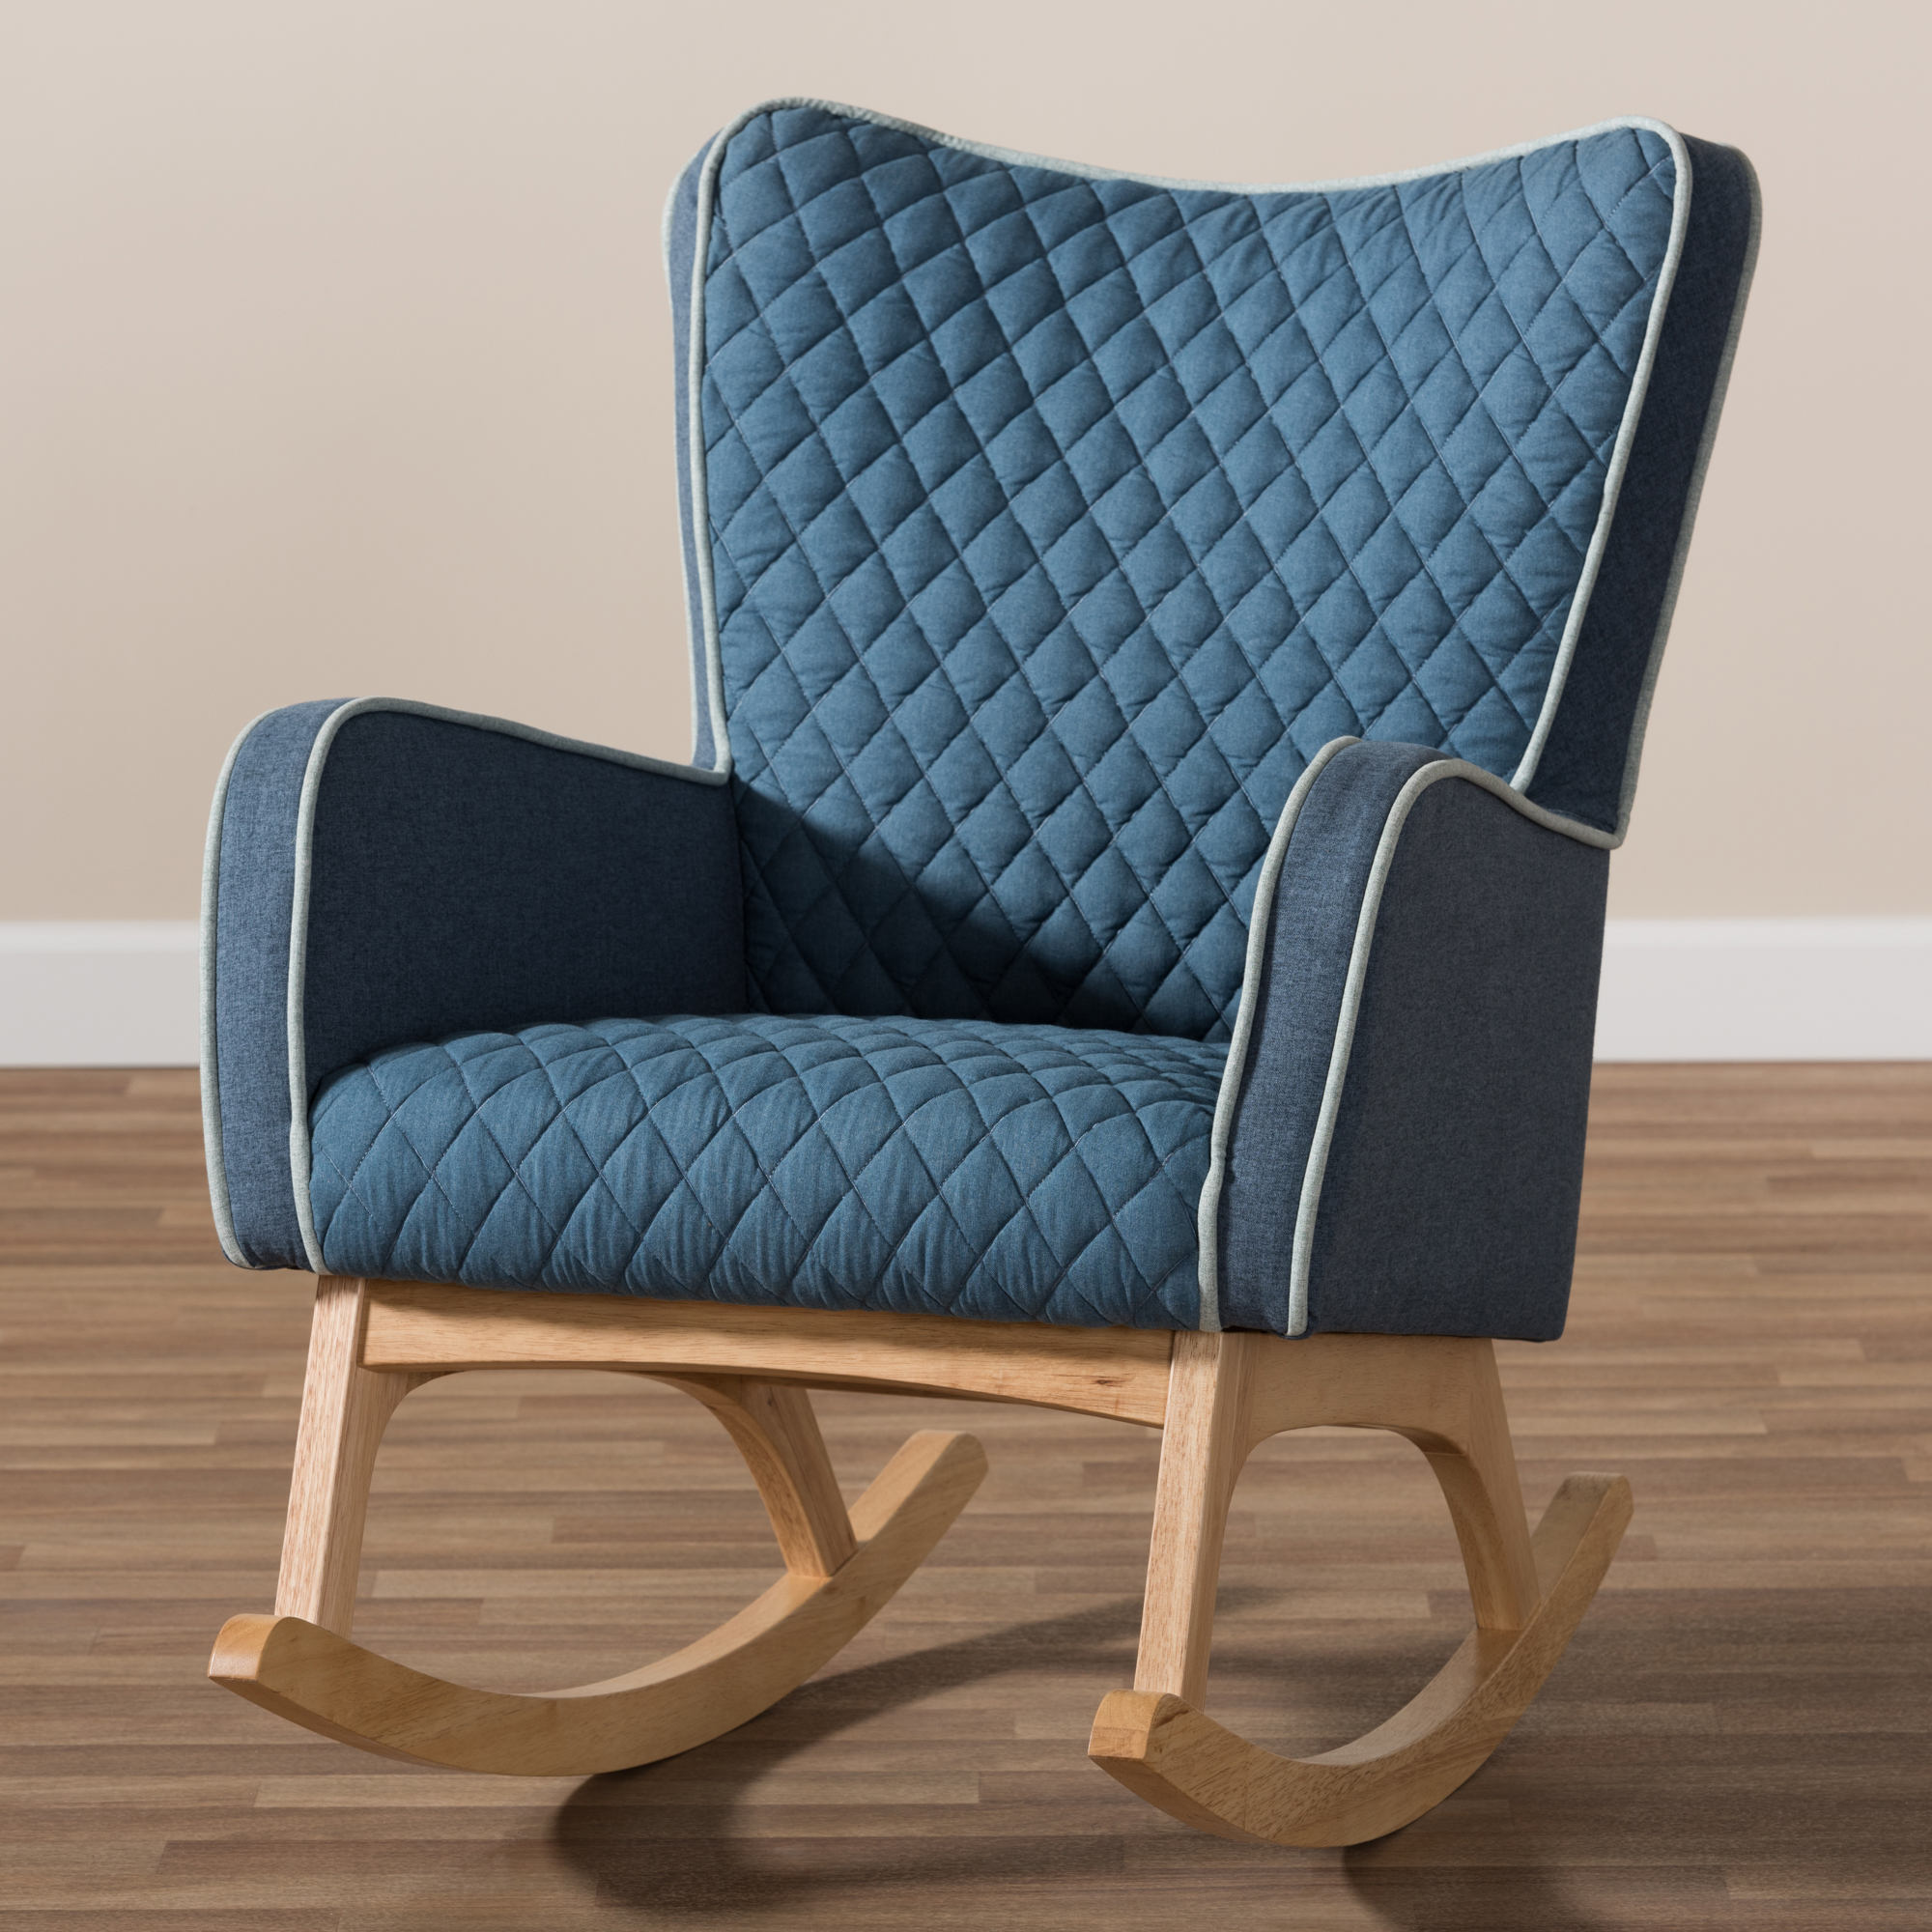 blue rocking chair. Baxton Studio Zoelle Mid-Century Modern Blue Fabric Upholstered Natural Finished Rocking Chair - BBT5305